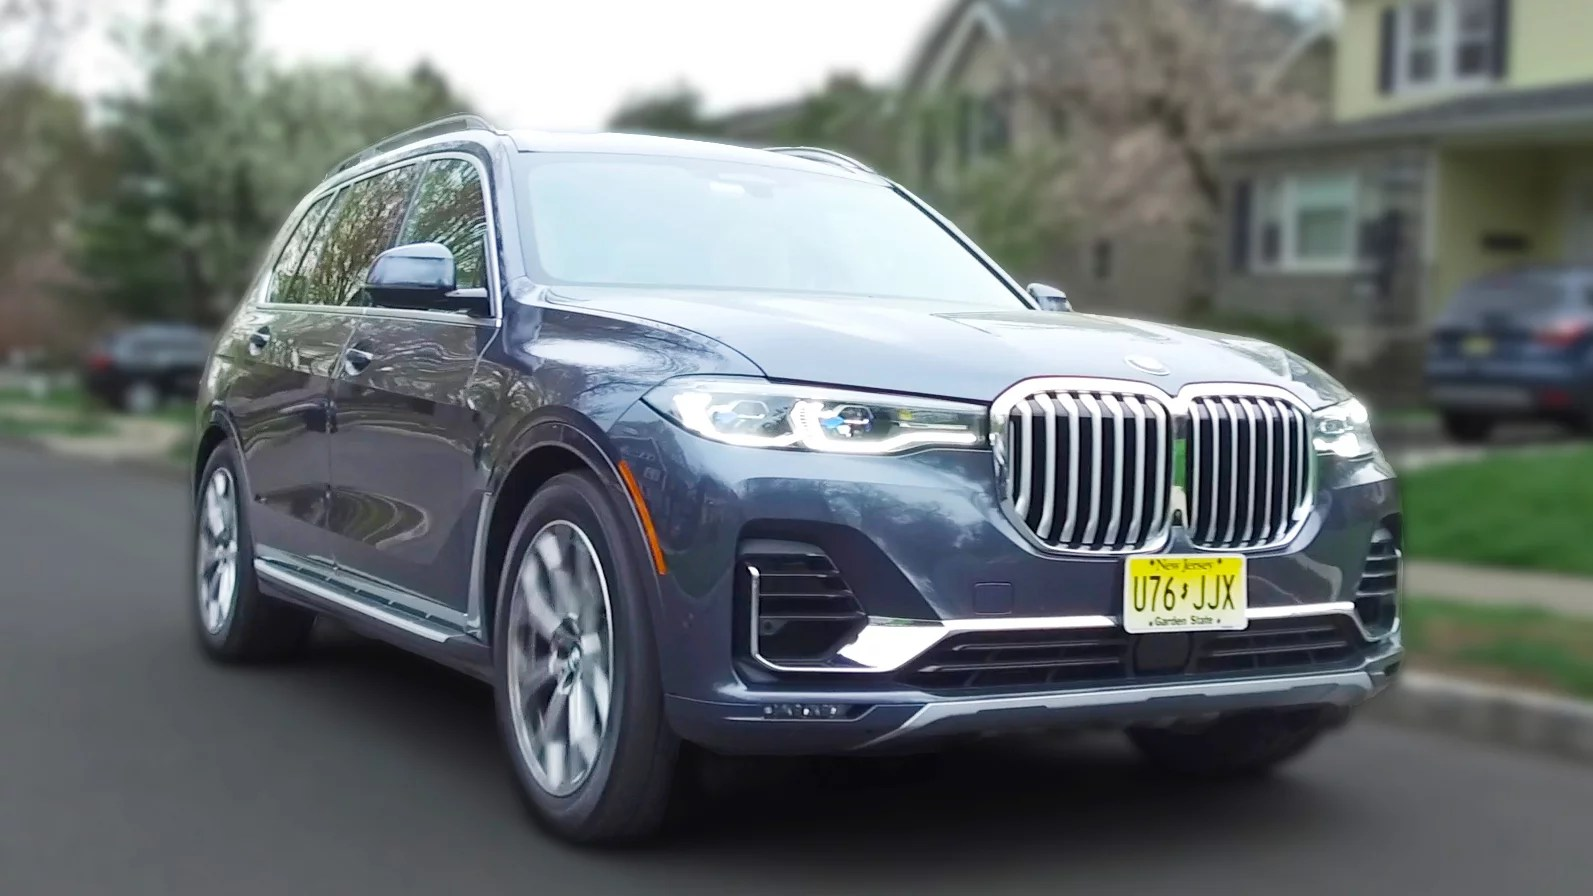 Real Reviews | Are The BMW X7 Tech Features Helpful Or Gimmicky?